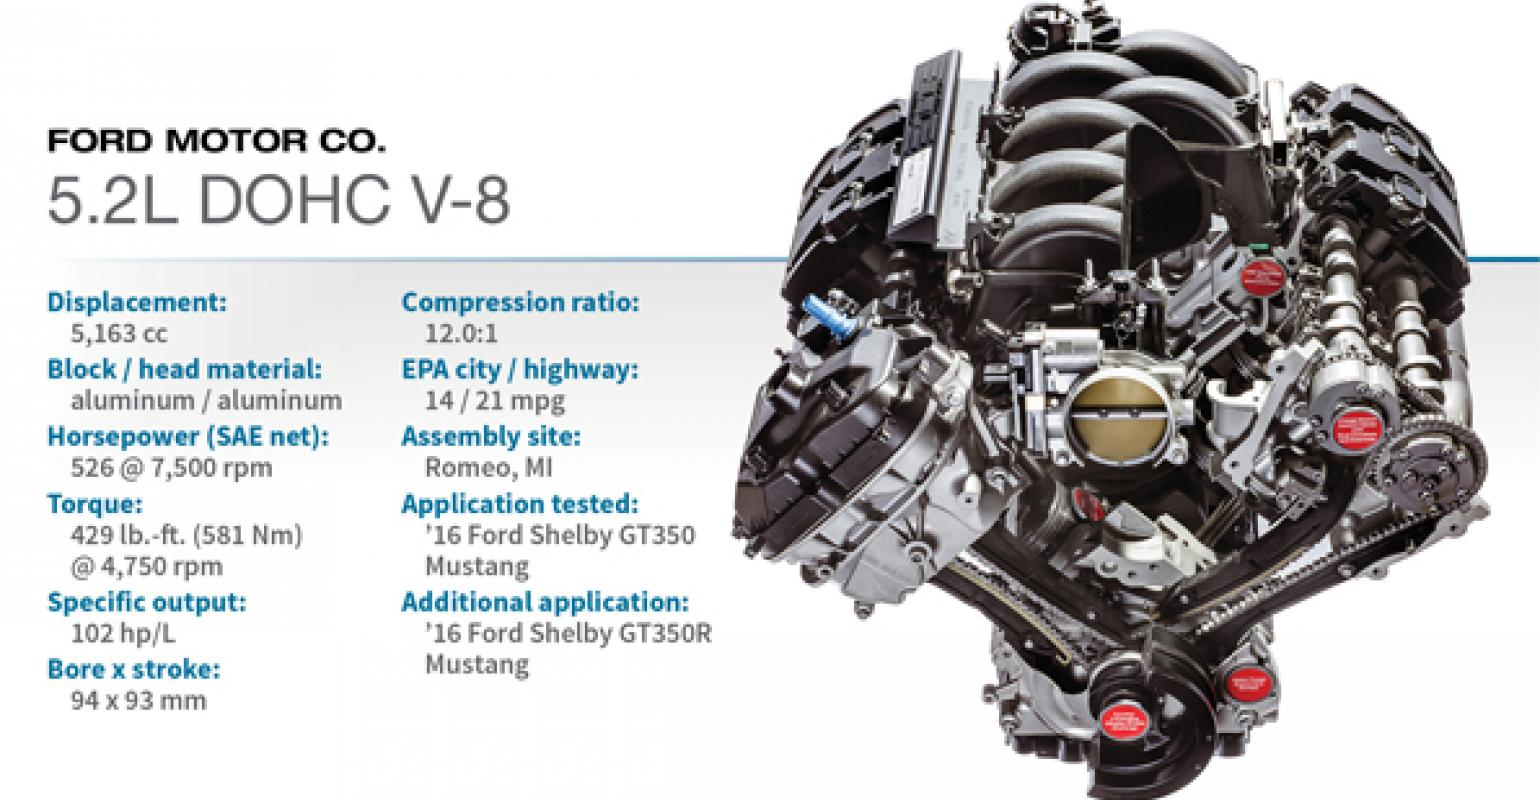 ford coyote 5 0 engine diagram 2016 winner ford 5 2l dohc v 8 wardsauto  2016 winner ford 5 2l dohc v 8 wardsauto